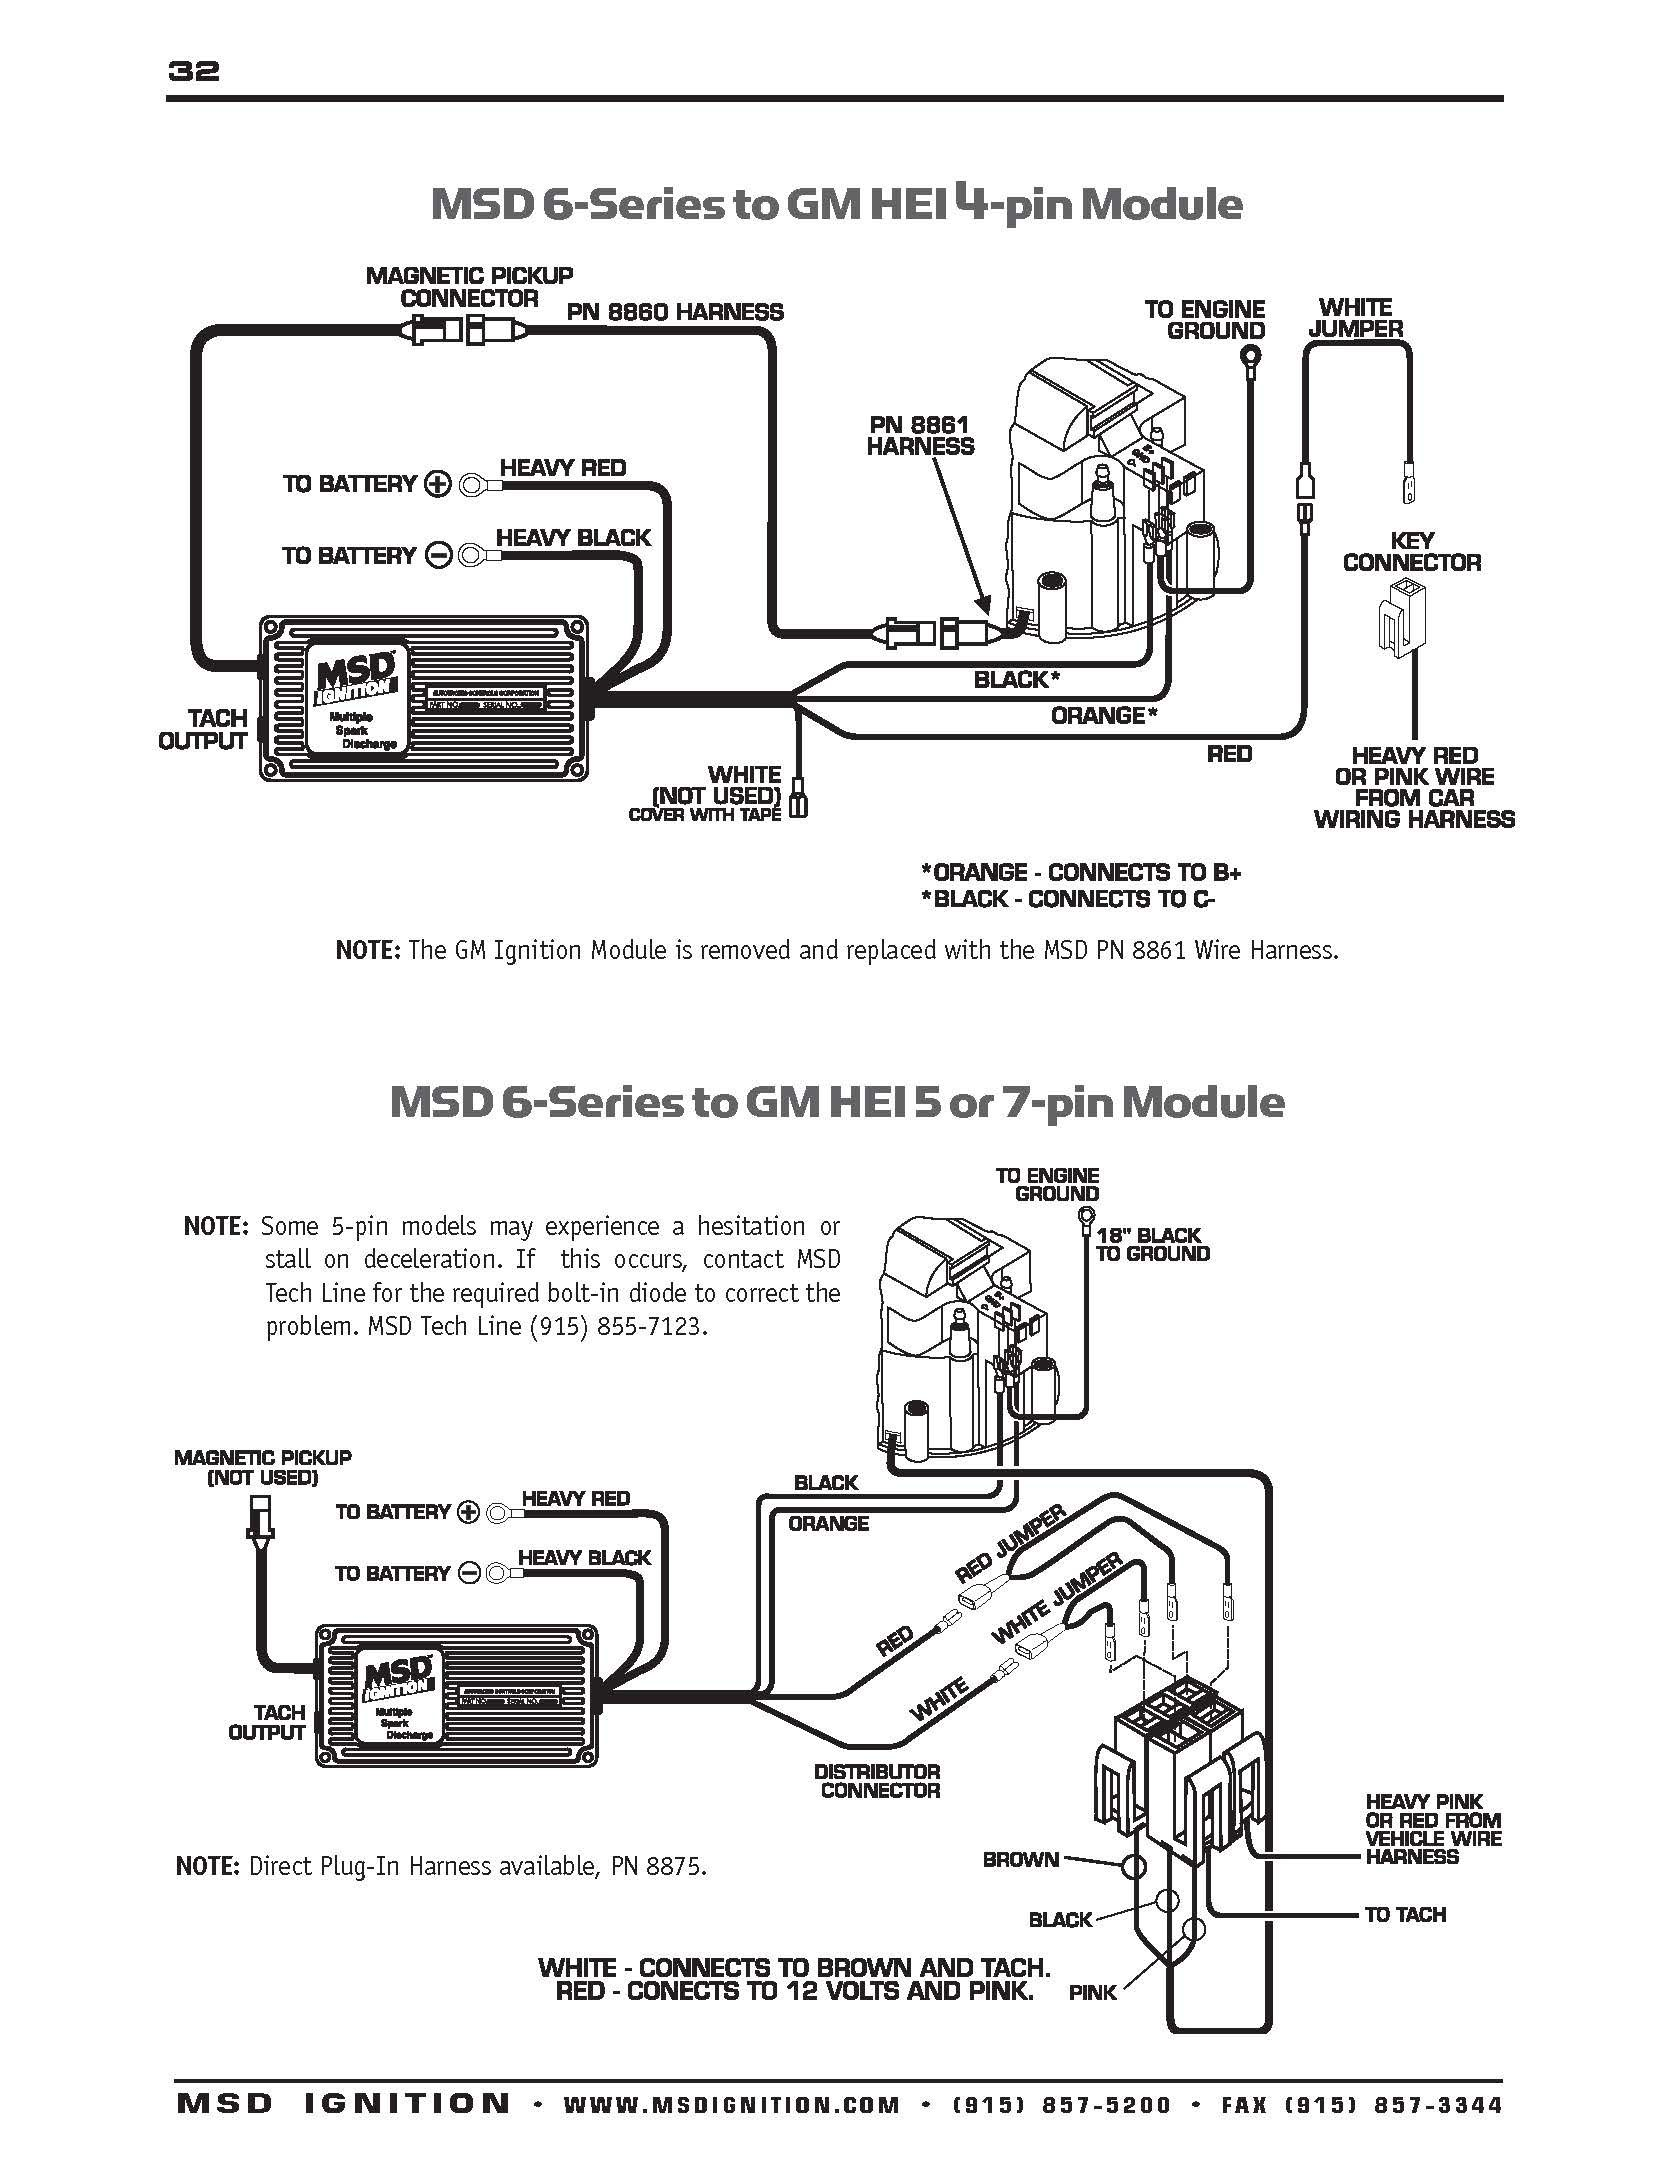 a8a9c5dd0854d22e6aad6bb5dda79a11 msd ignition wiring diagrams 1966 chevelle pinterest engine msd blaster coil wiring diagram at pacquiaovsvargaslive.co